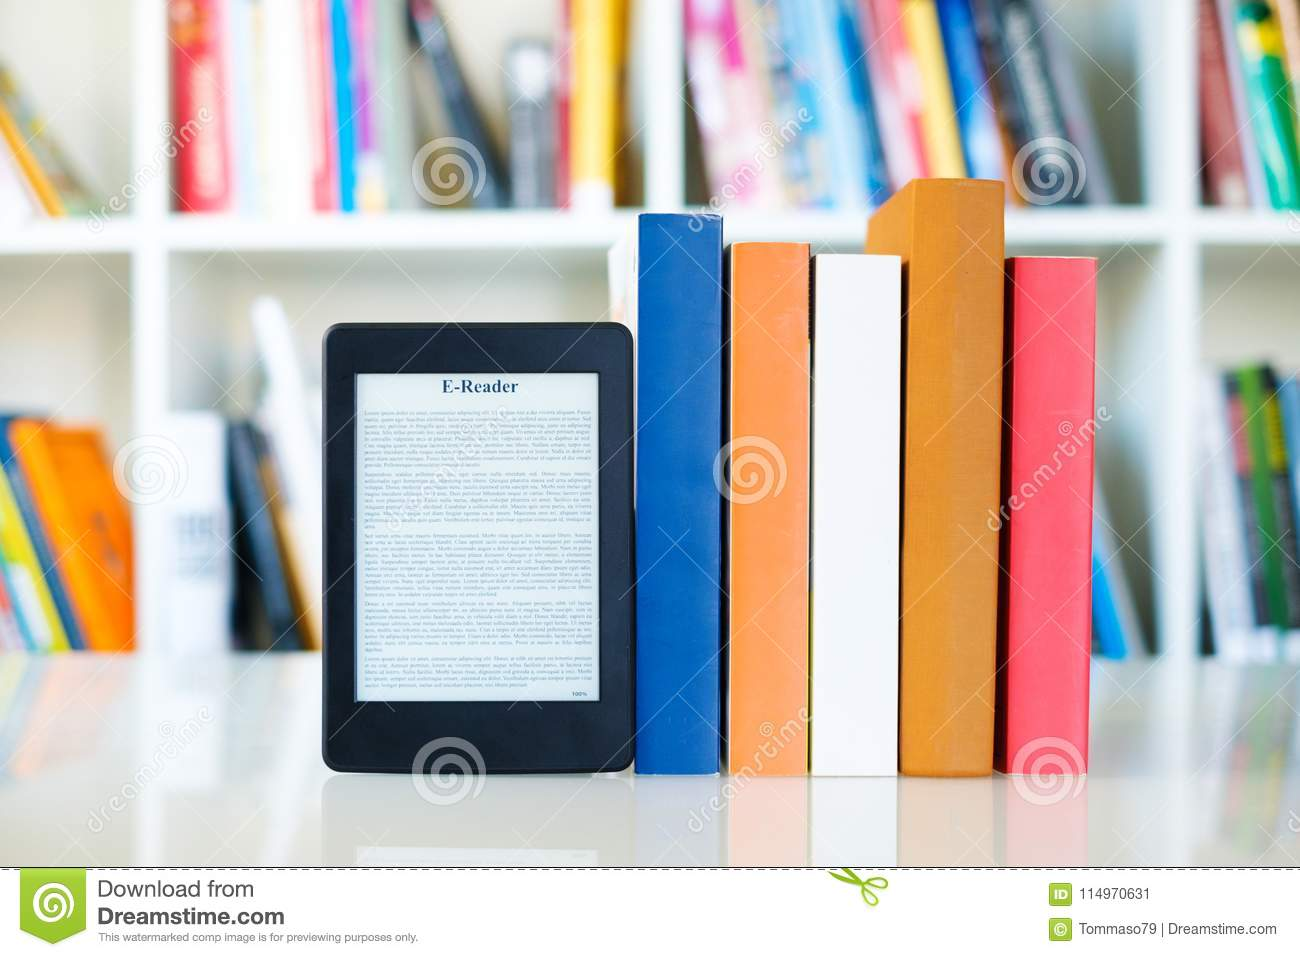 Ebook Reader And Paper Books On Bookshelf Background Download Preview